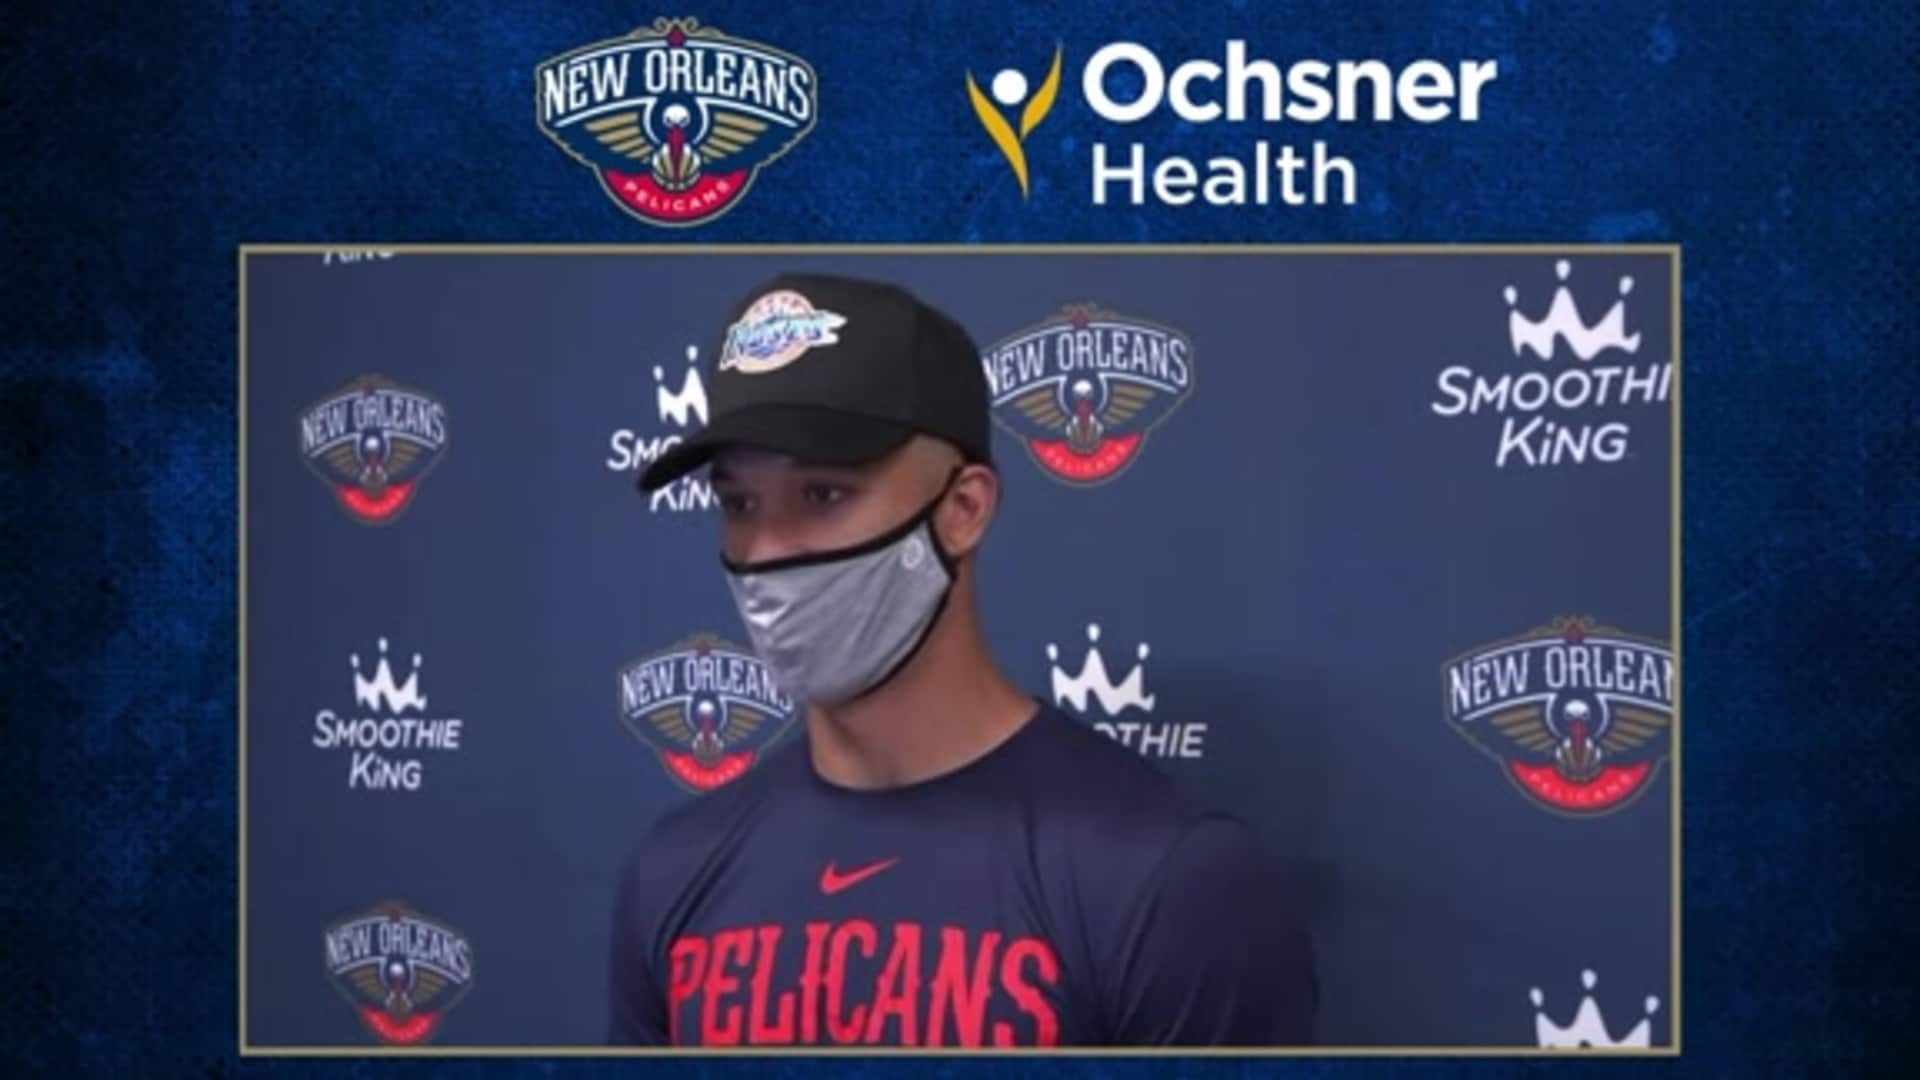 Josh Hart reflects on Jazz game and looks ahead to LA Clippers  | Ochsner Pelicans Practice